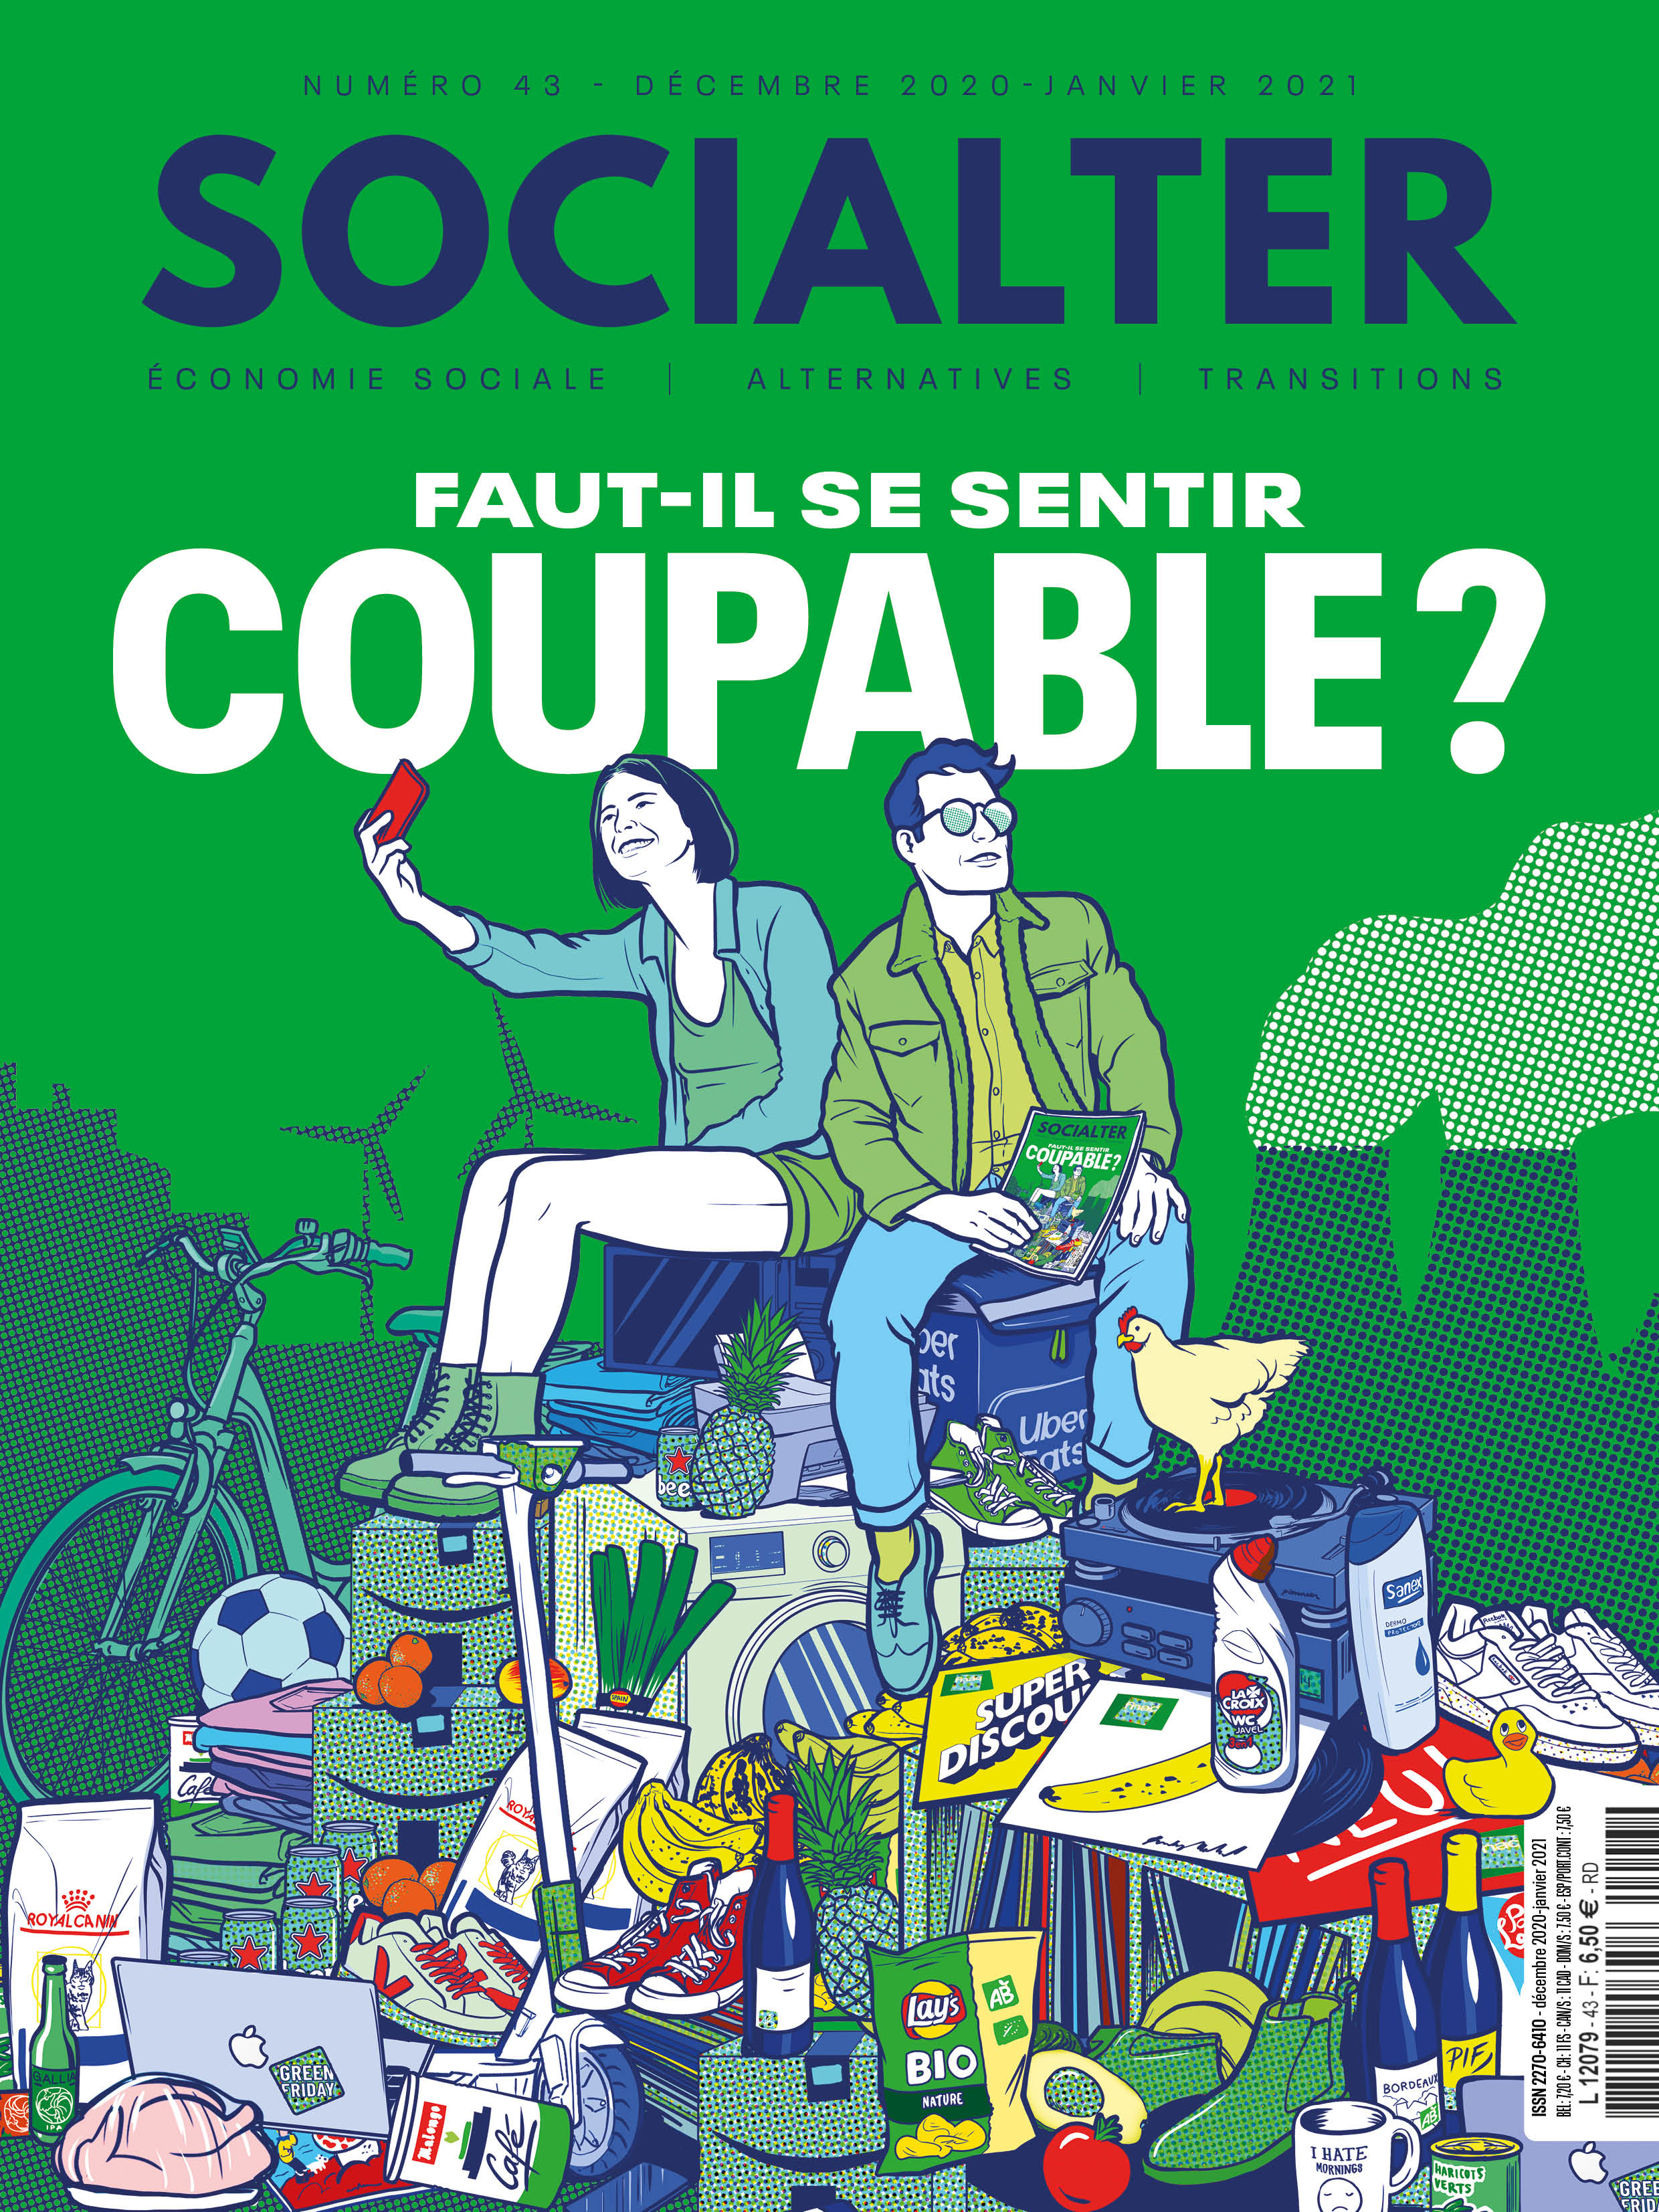 Faut-il se sentir coupable ?